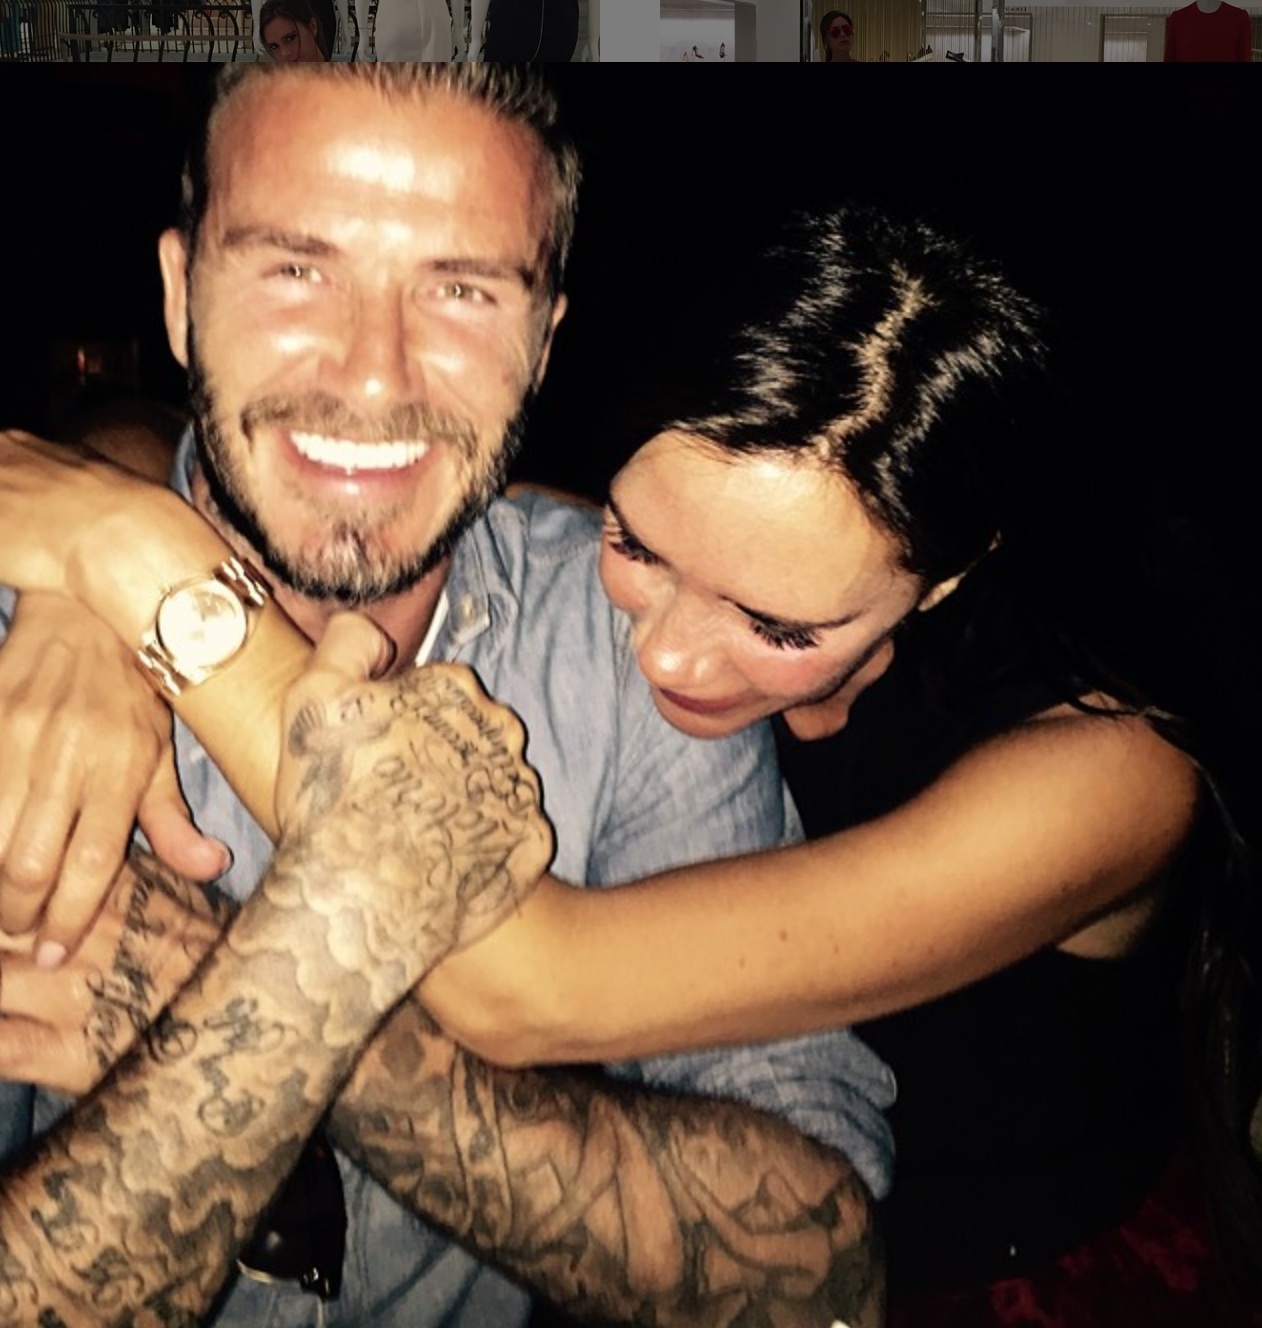 Victoria and David Beckham's IG anniversary posts give us all the #RelationshipGoals